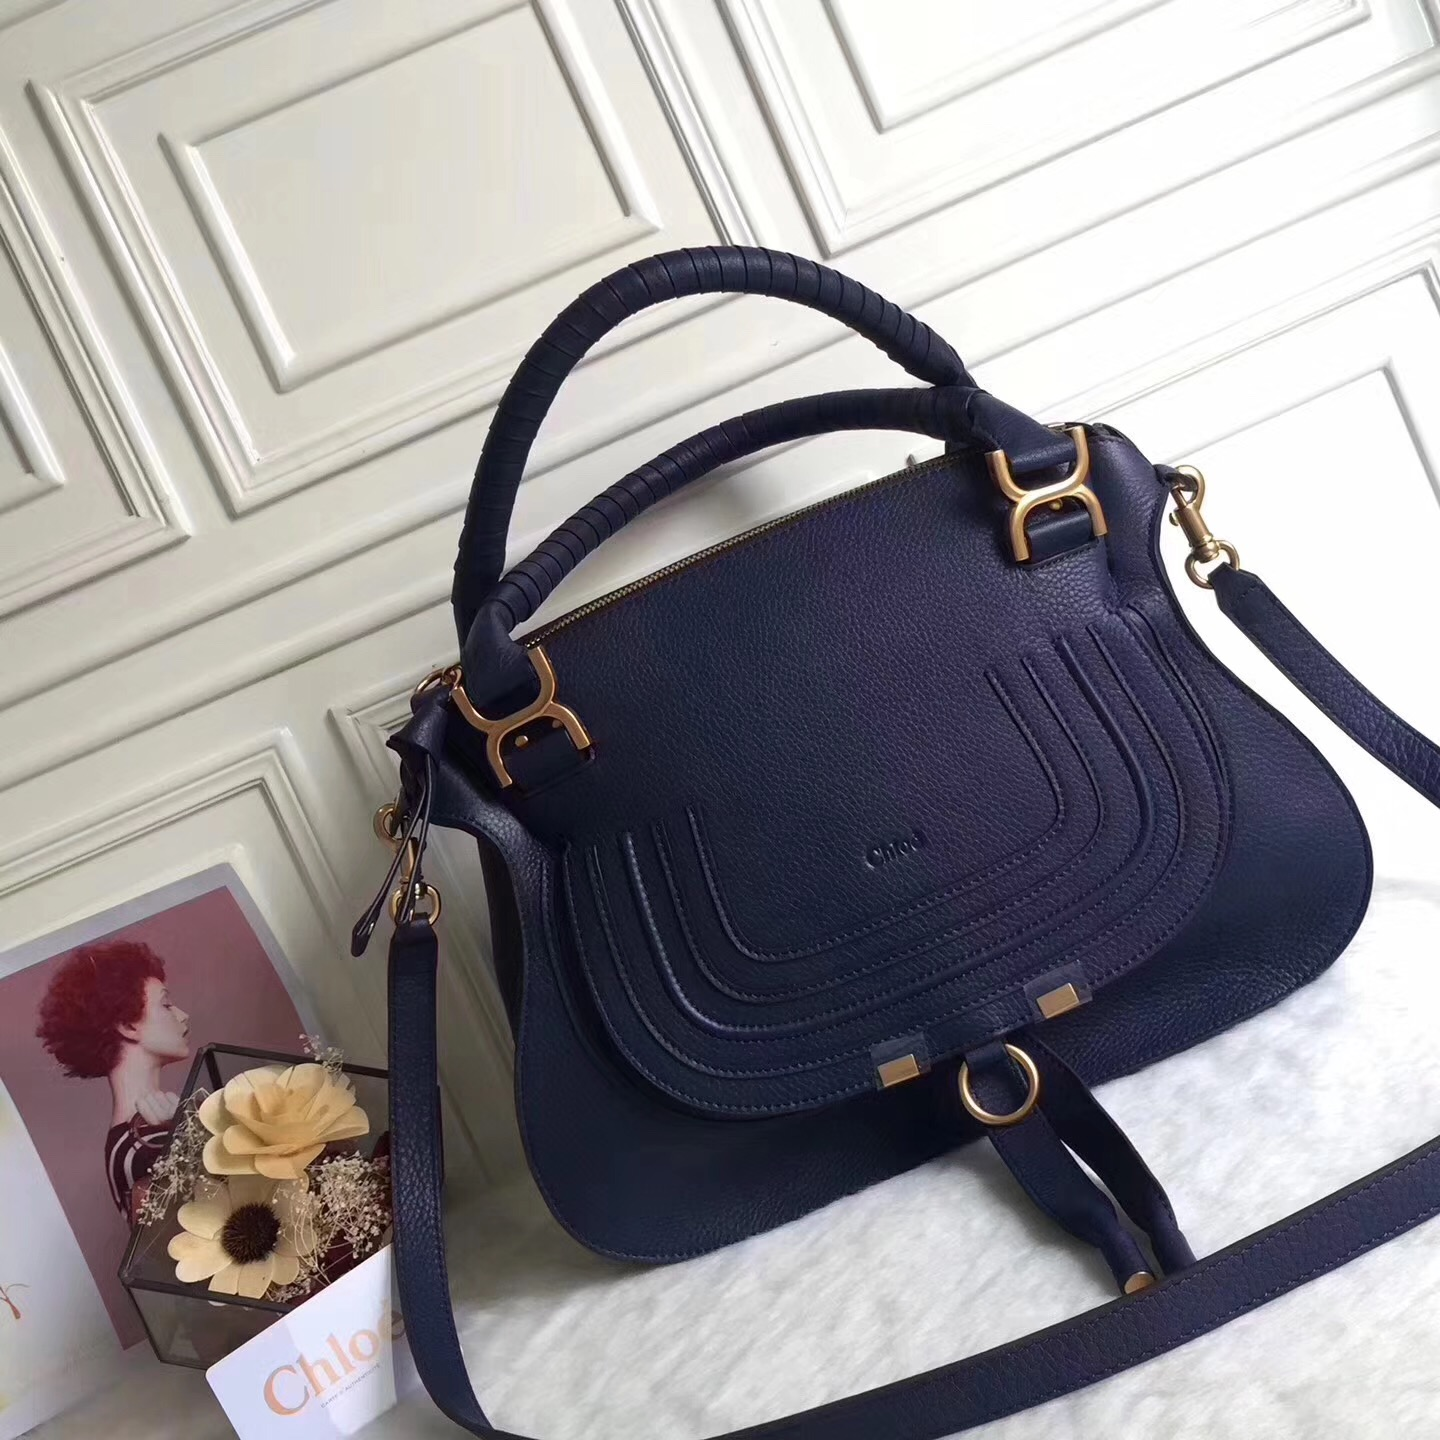 Chloe Marcie Cow Leather Tote Handbag Dark Blue